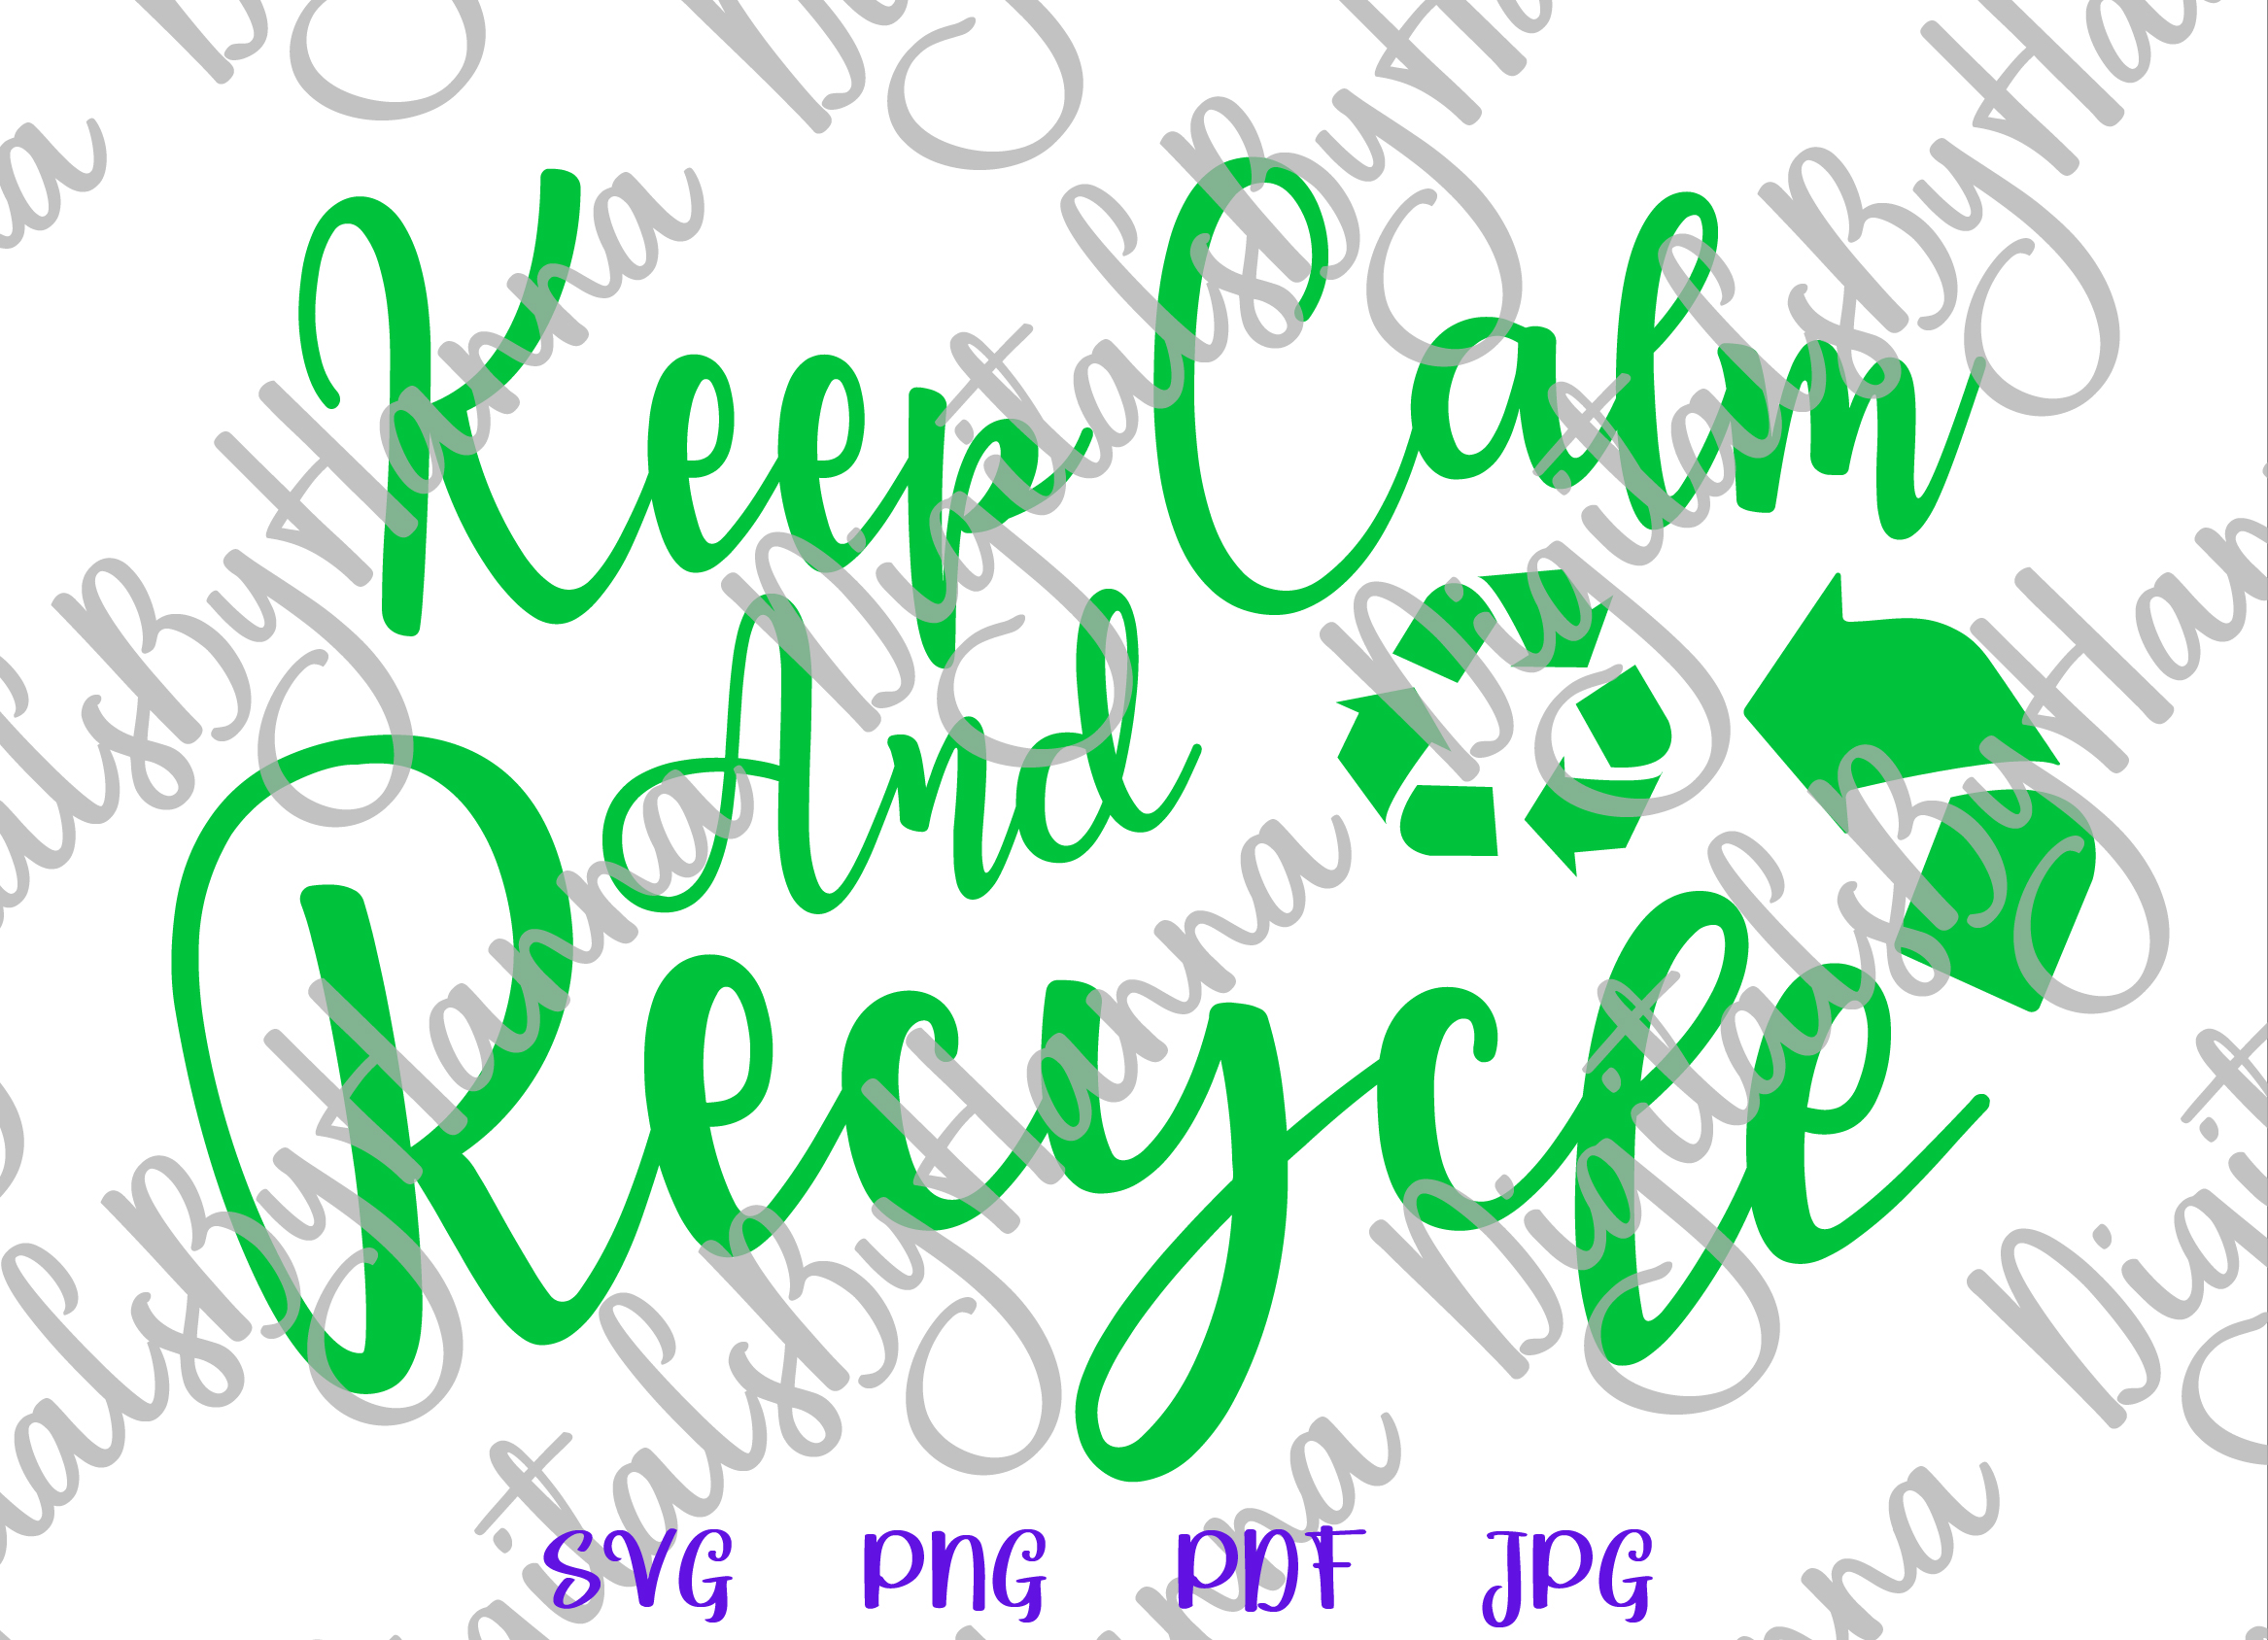 Keep Calm and Recycle Environment Motto Print & Cut PNG SVG example image 4